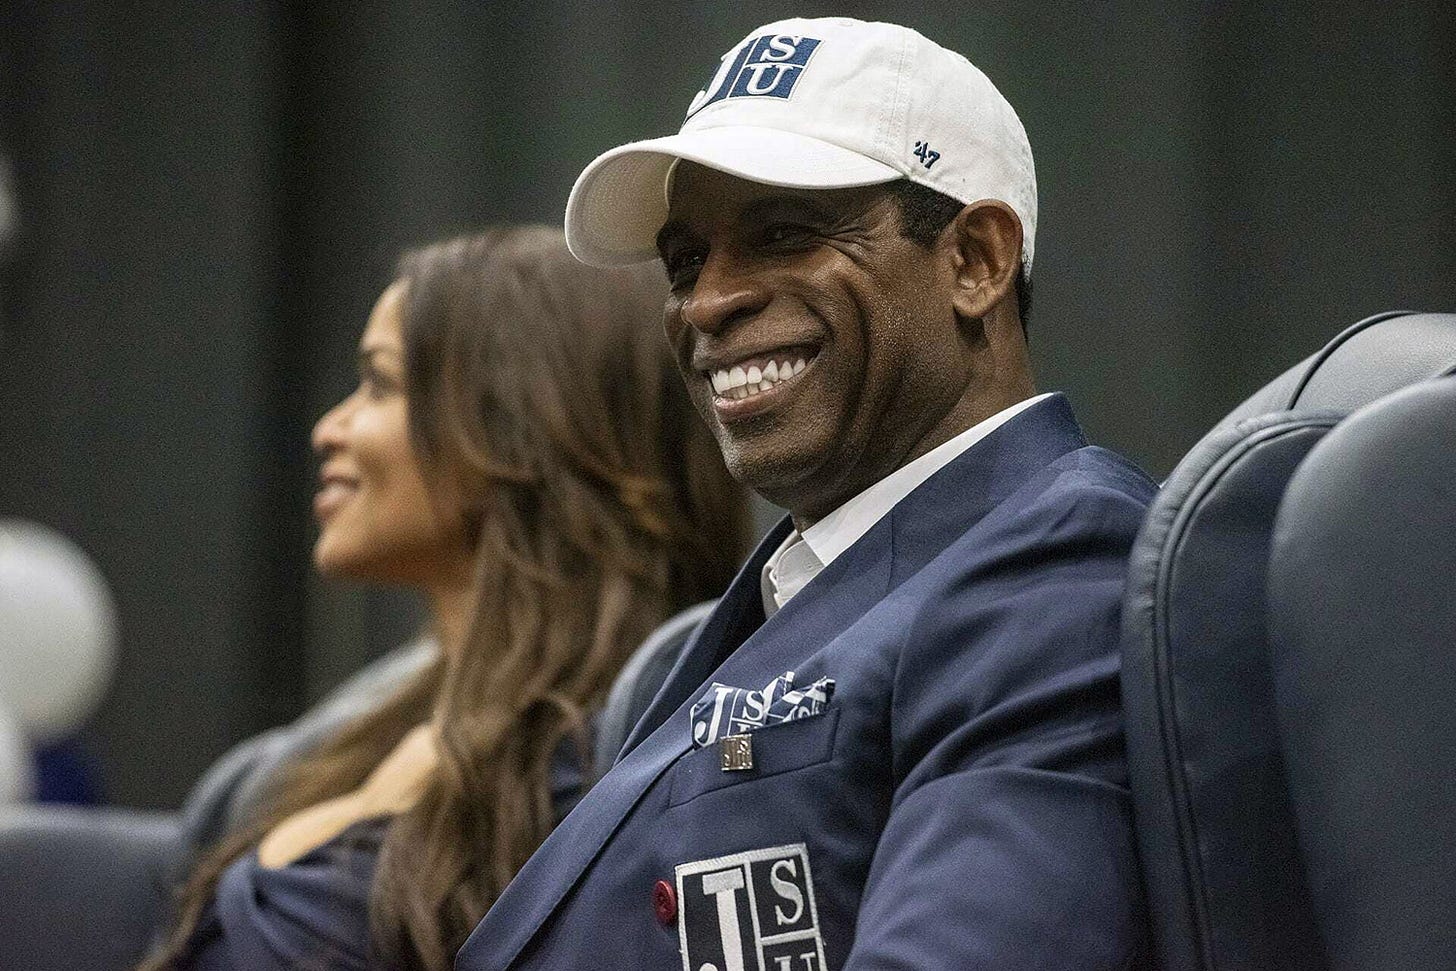 Match made in heaven': Deion Sanders to coach Jackson State